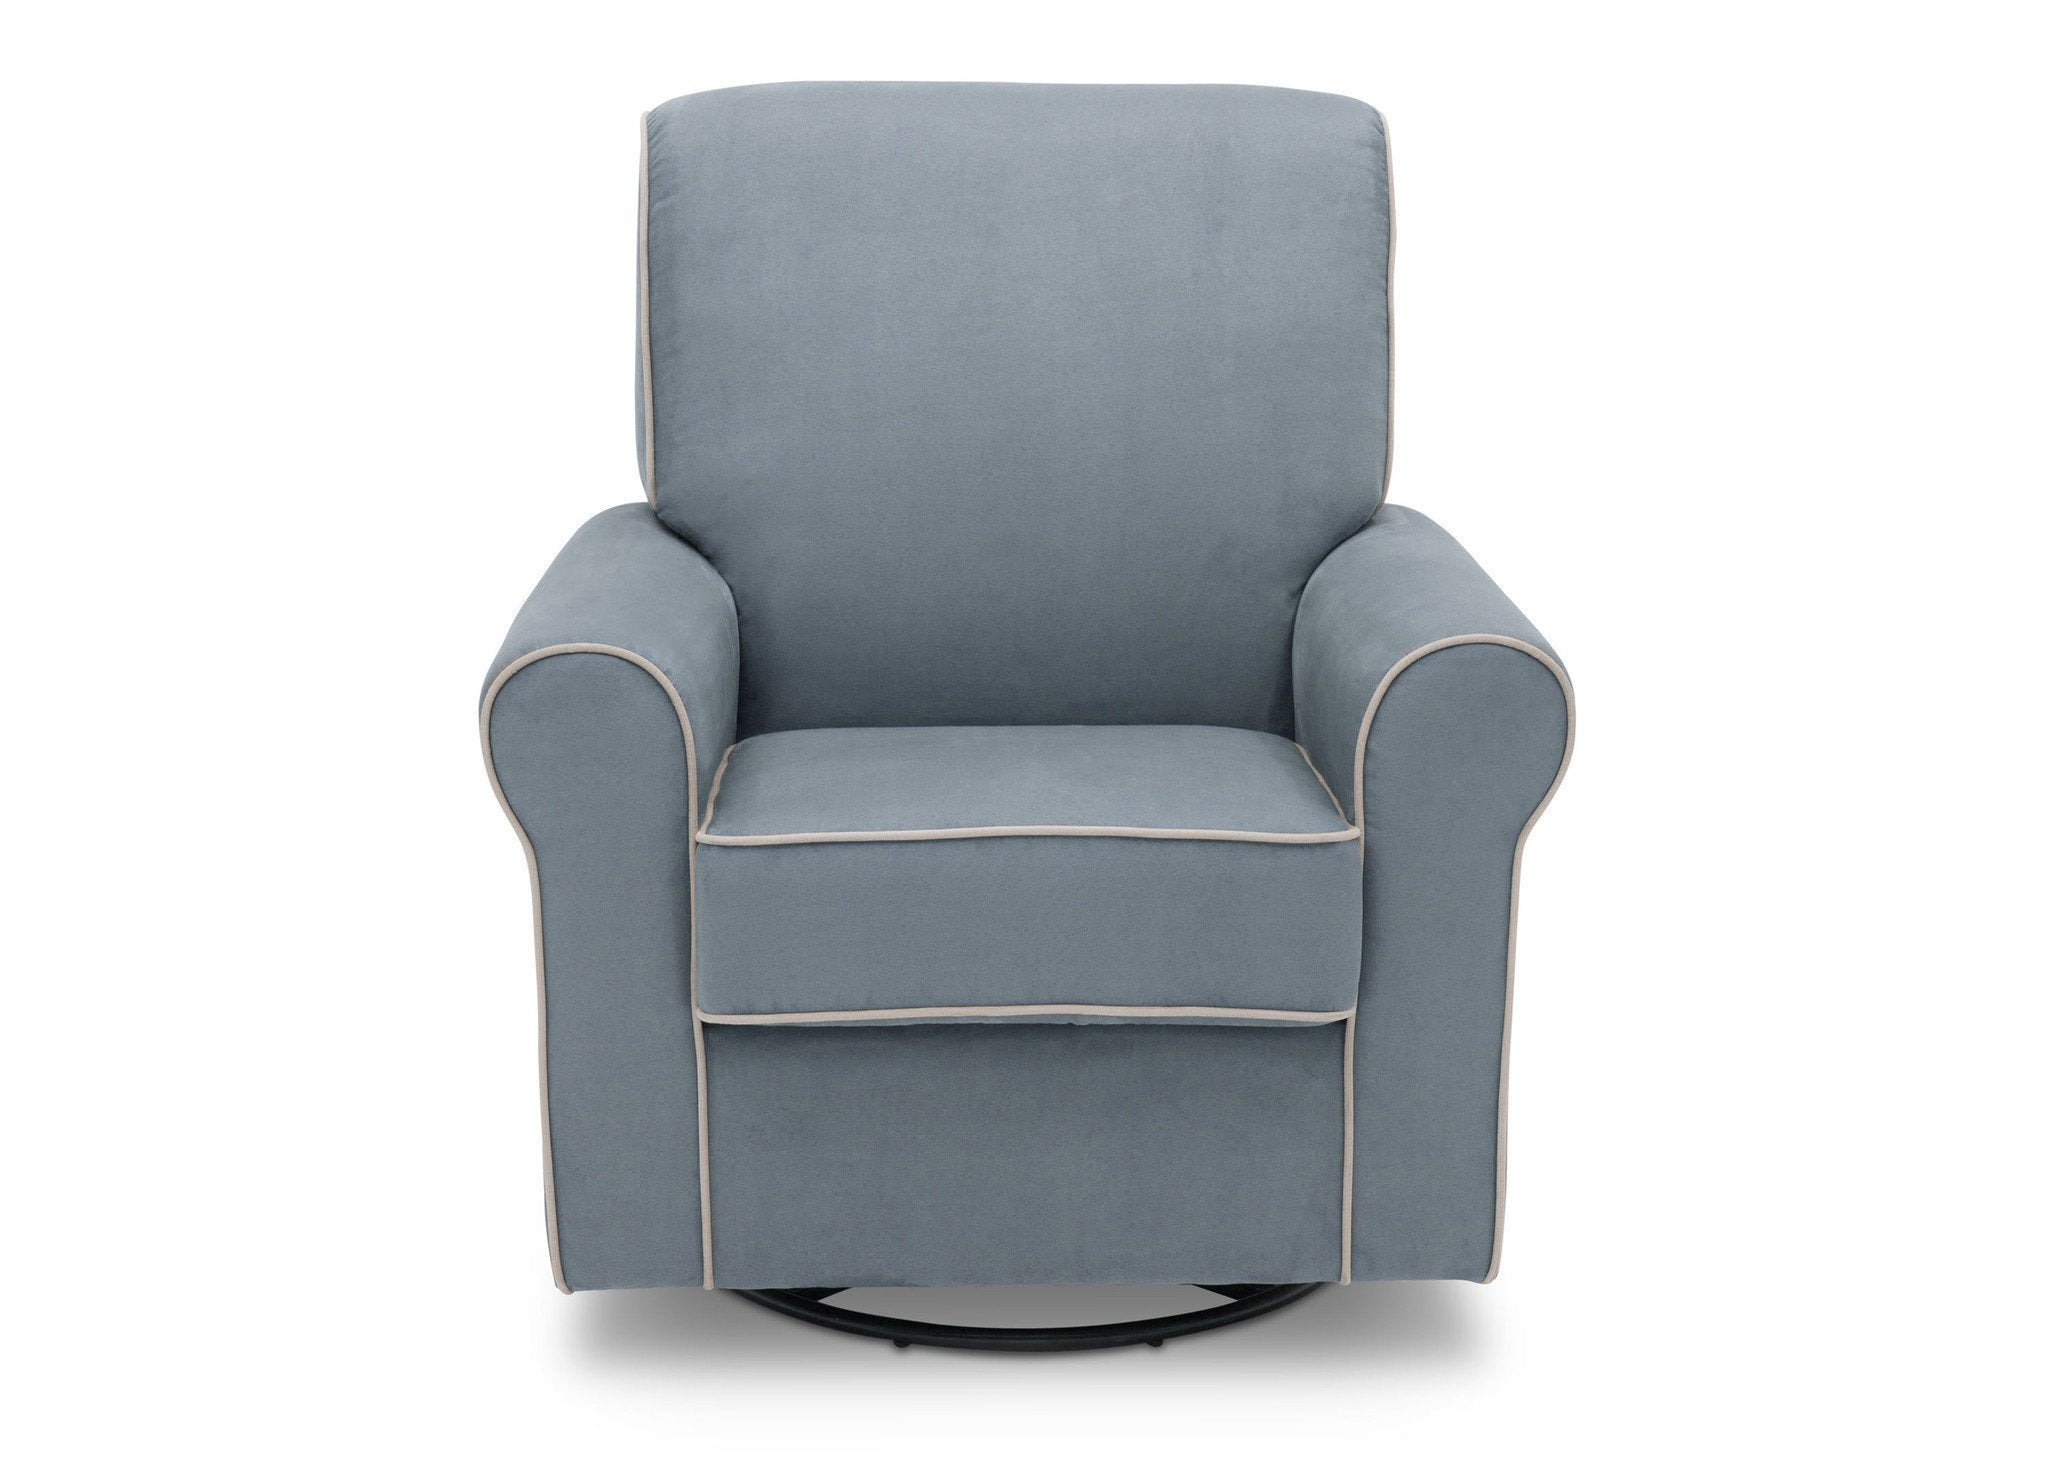 Gentil ... Simmons Kids Frozen Blue With Cream Welt (499) Rowen Upholstered Glider,  Front View ...